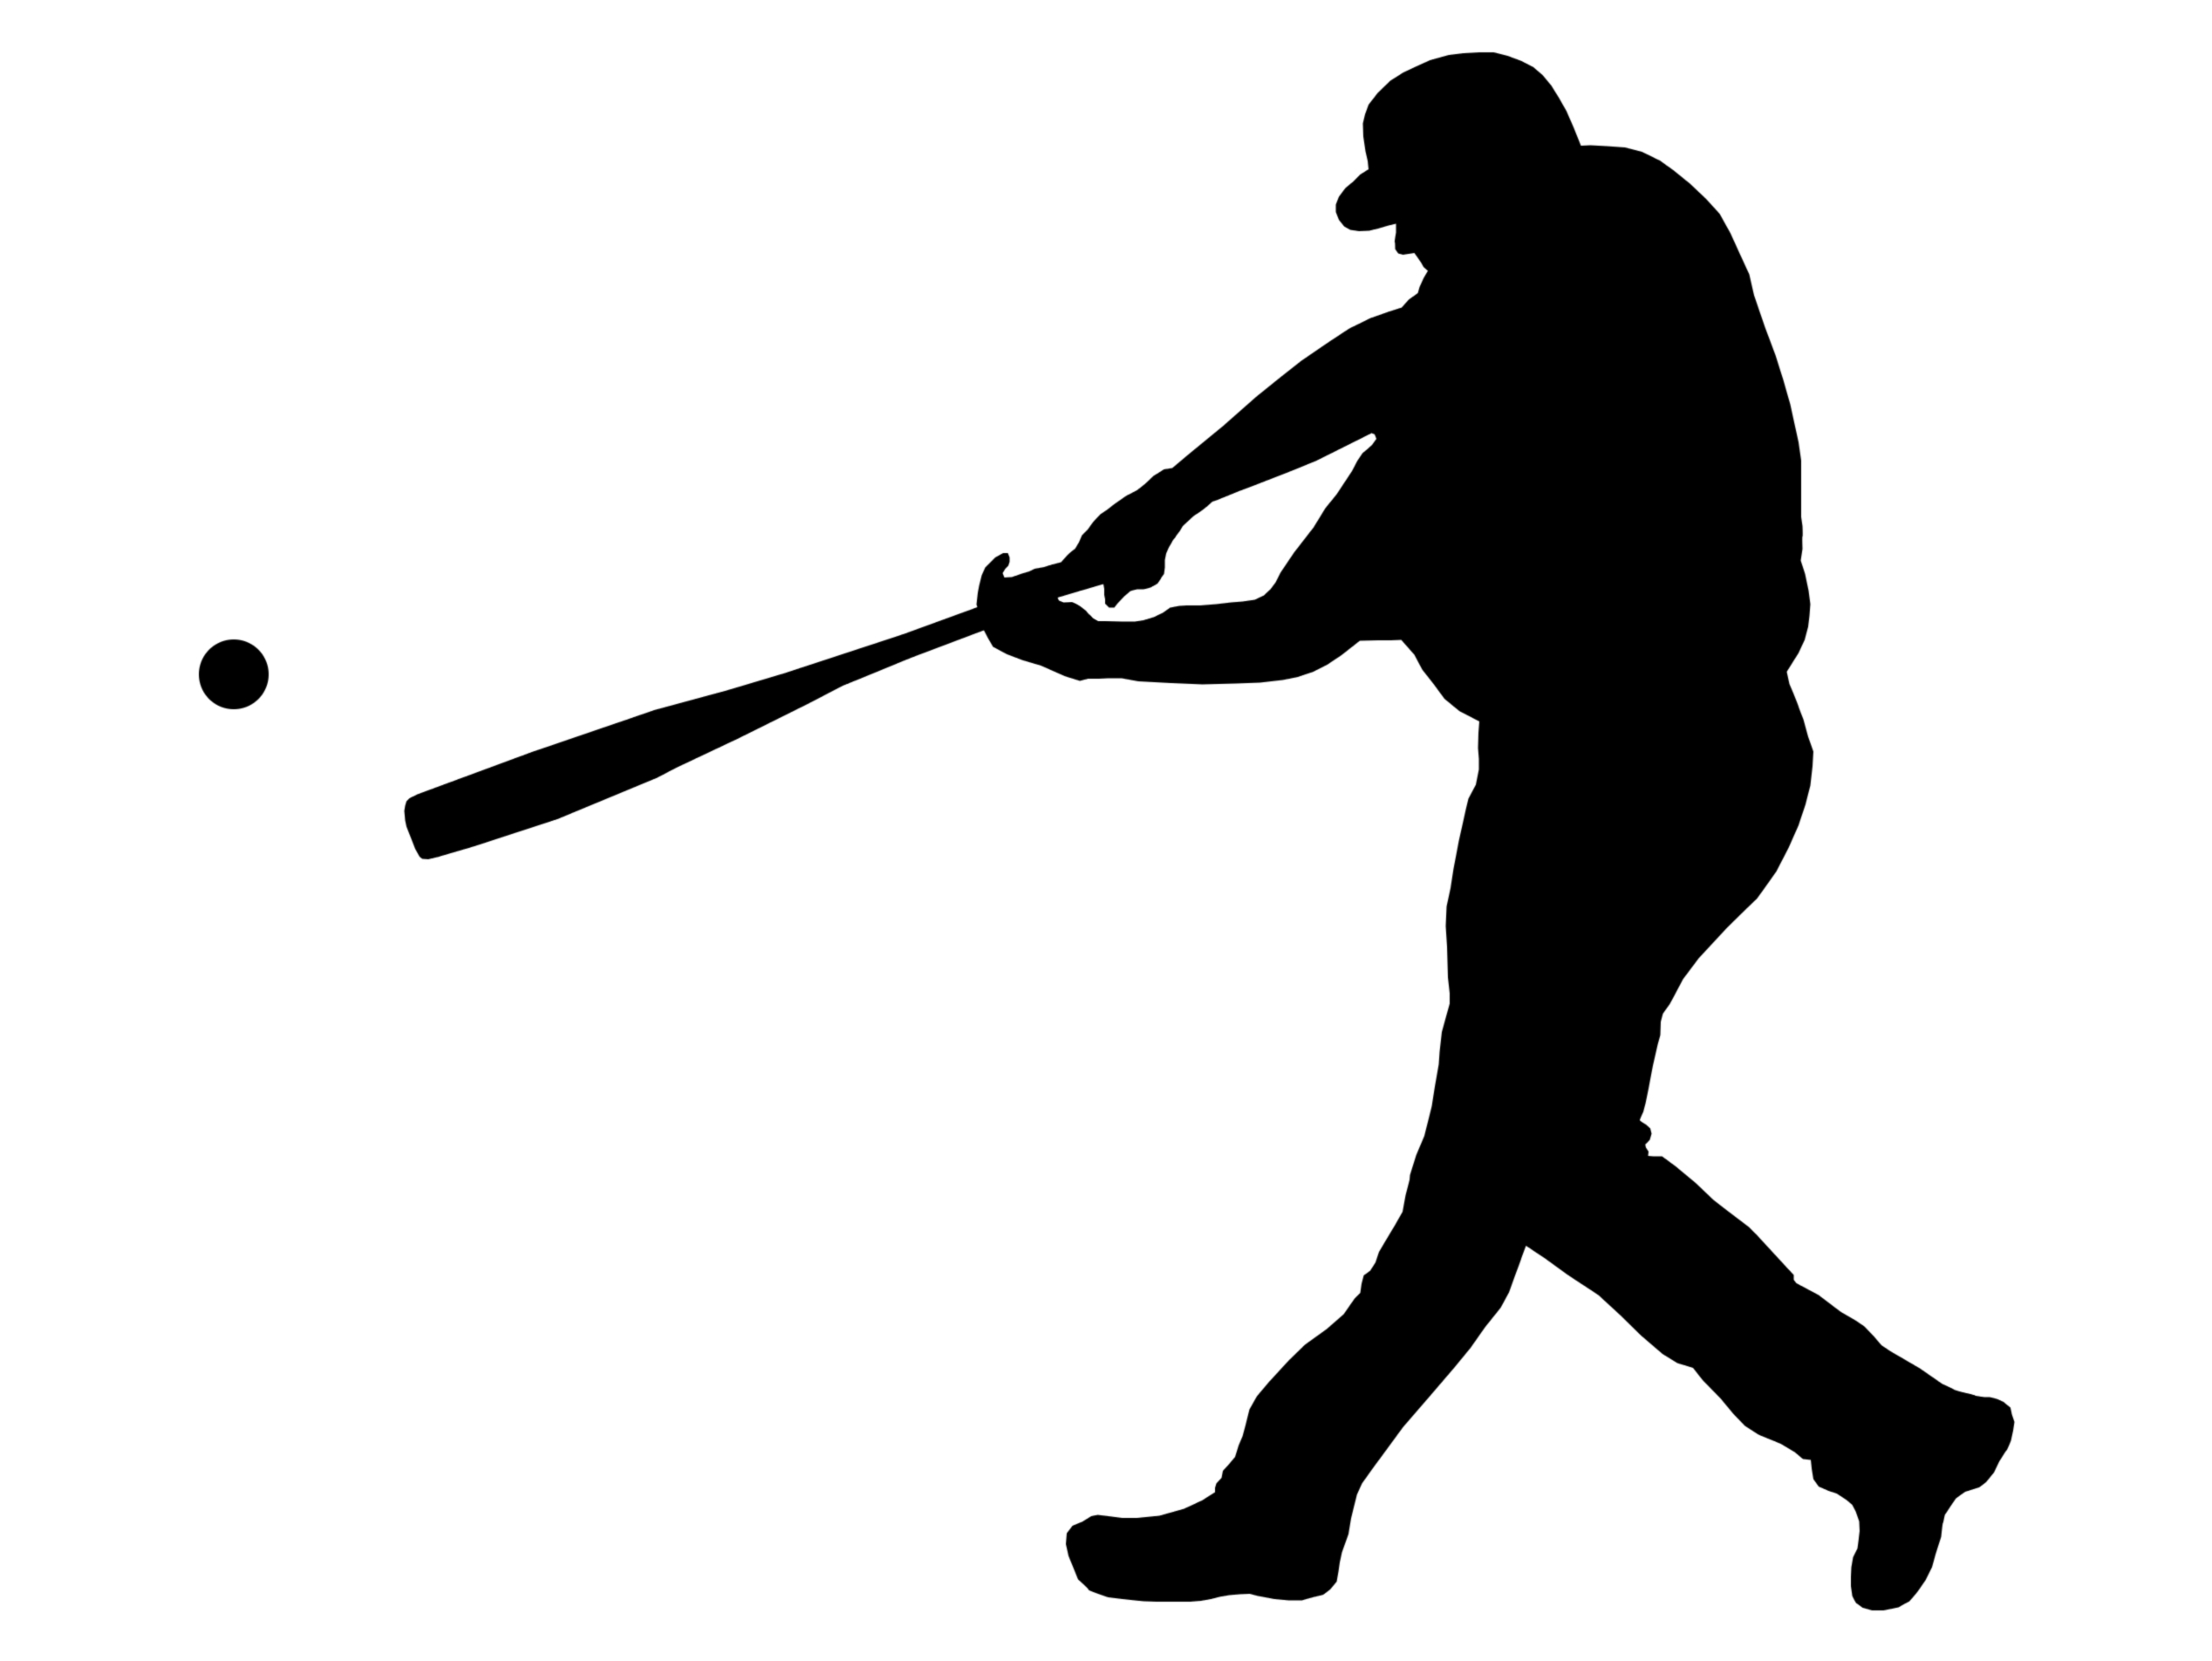 softball silhouette clip art at getdrawings com free for personal rh getdrawings com free baseball clipart pictures free baseball clipart pictures